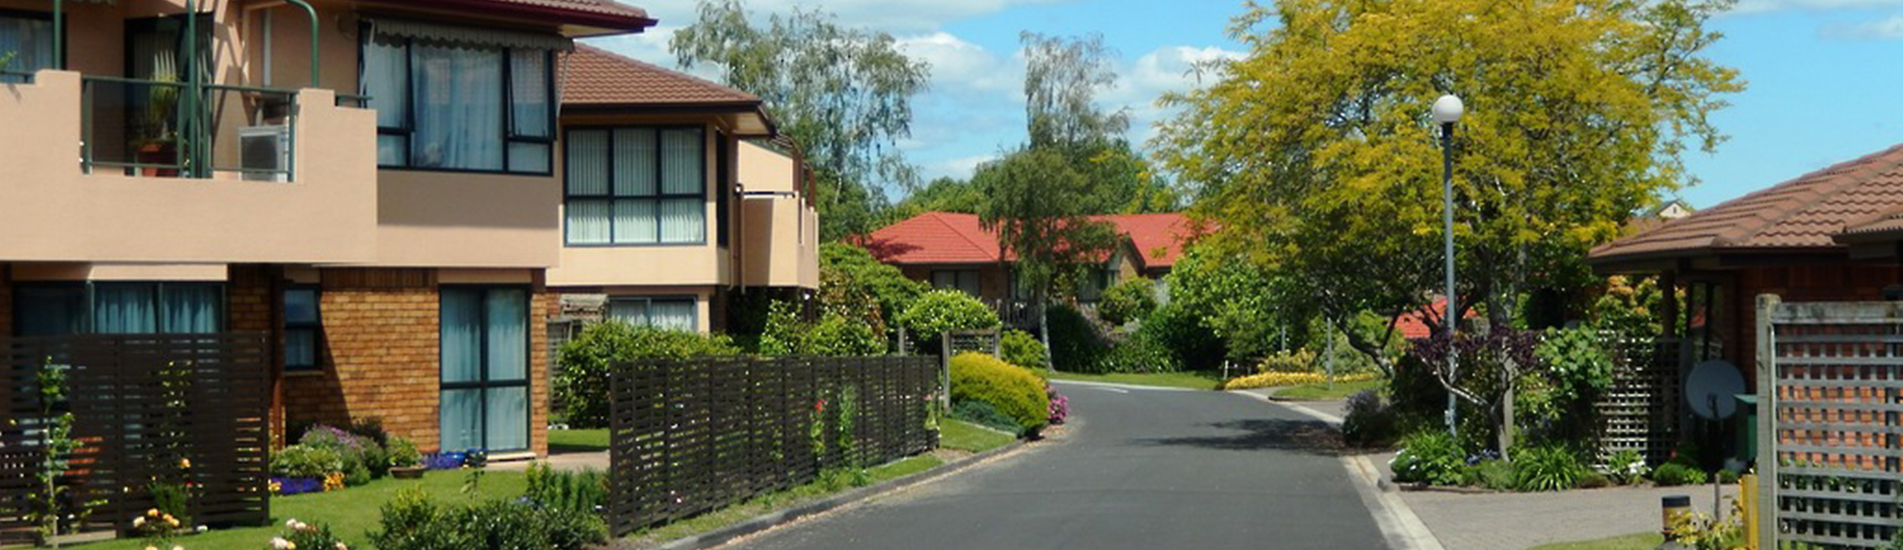 Alandale retirement village